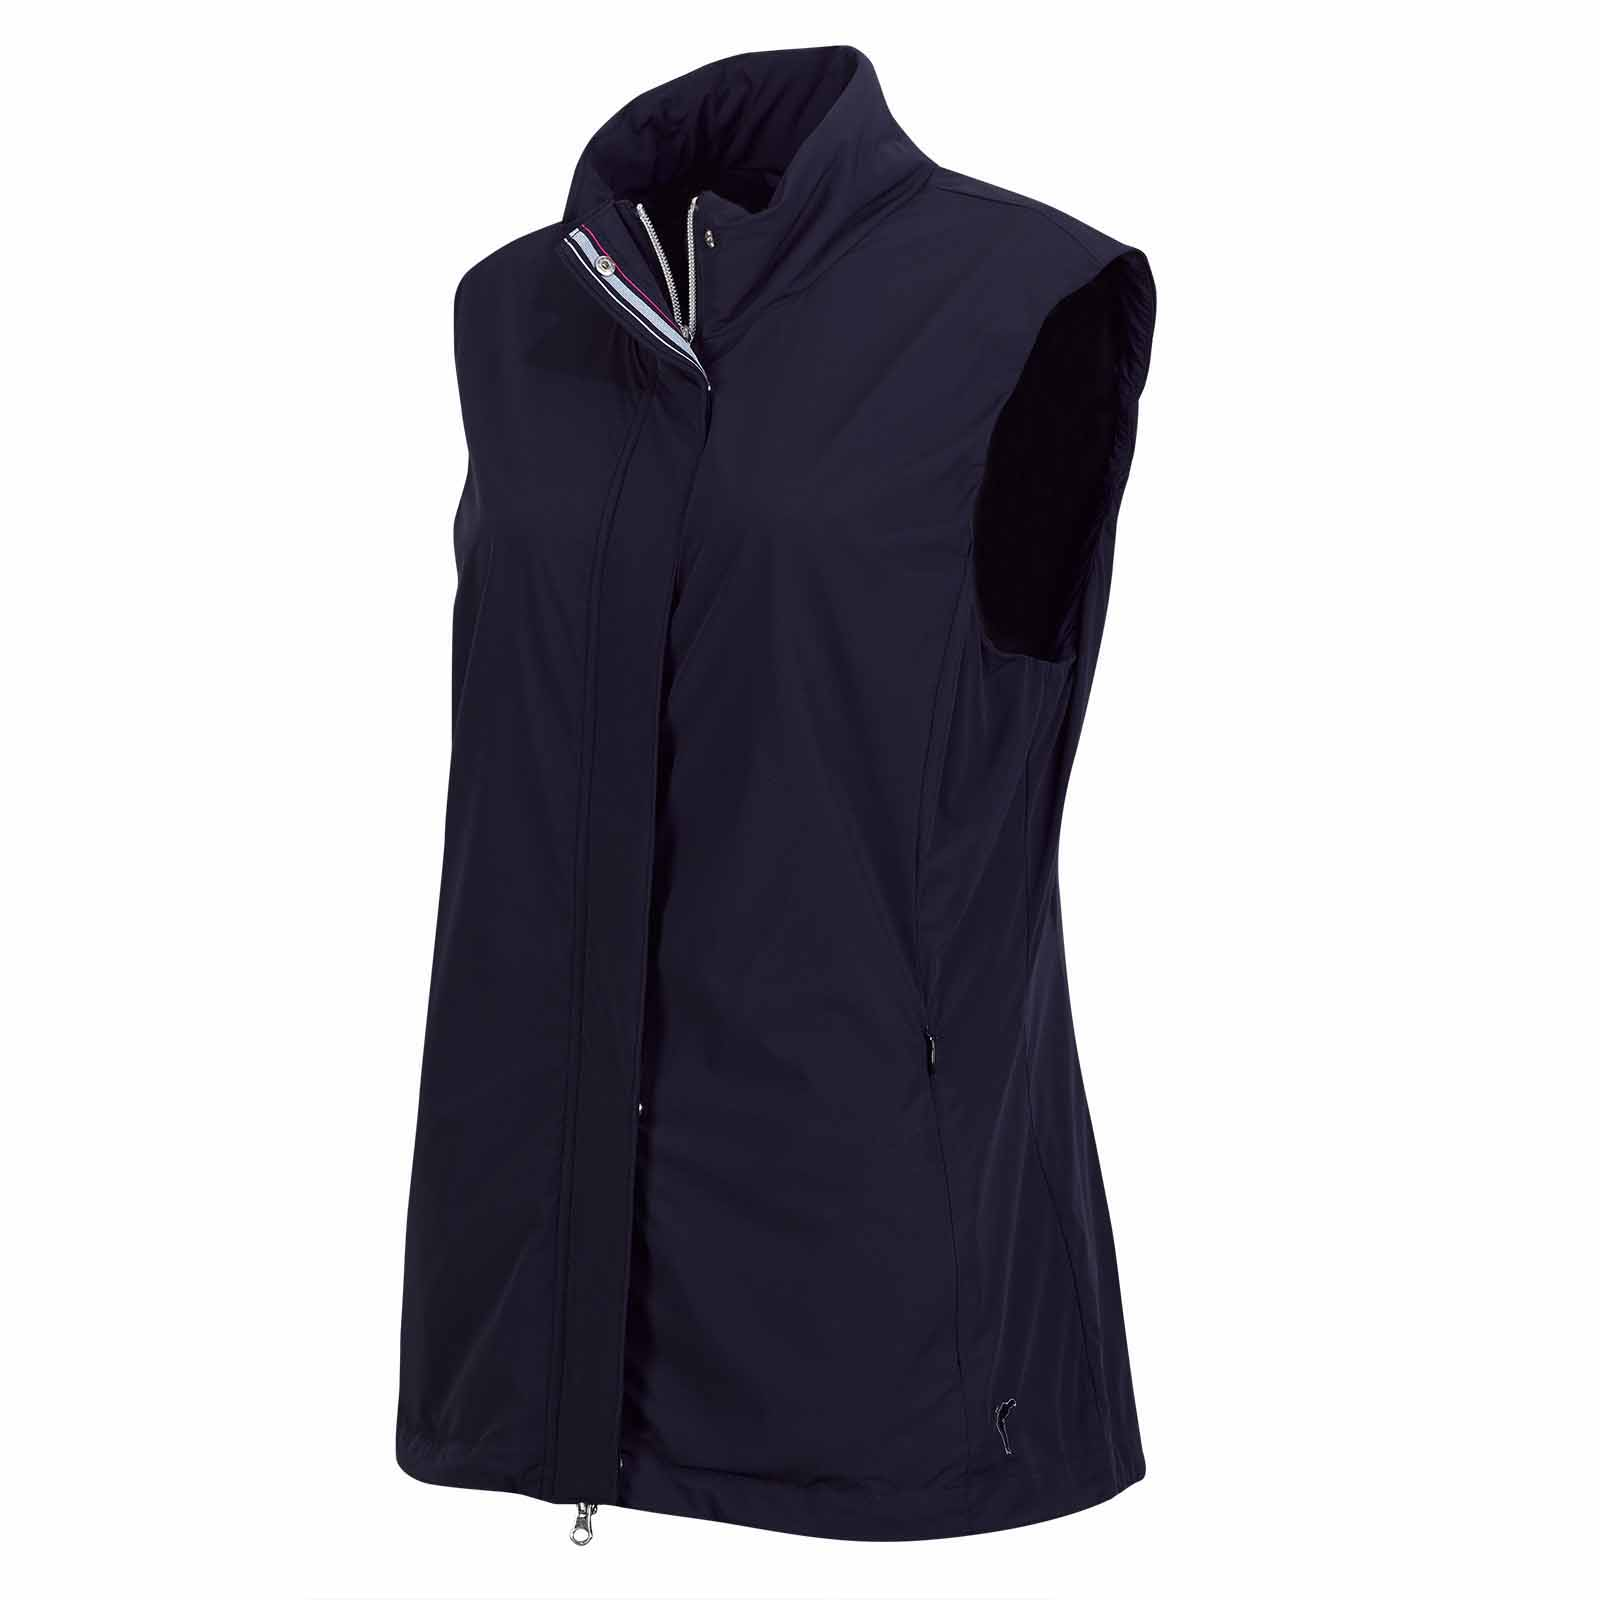 Windprotection Premium Damen Golfweste für atmungsaktives Spiel